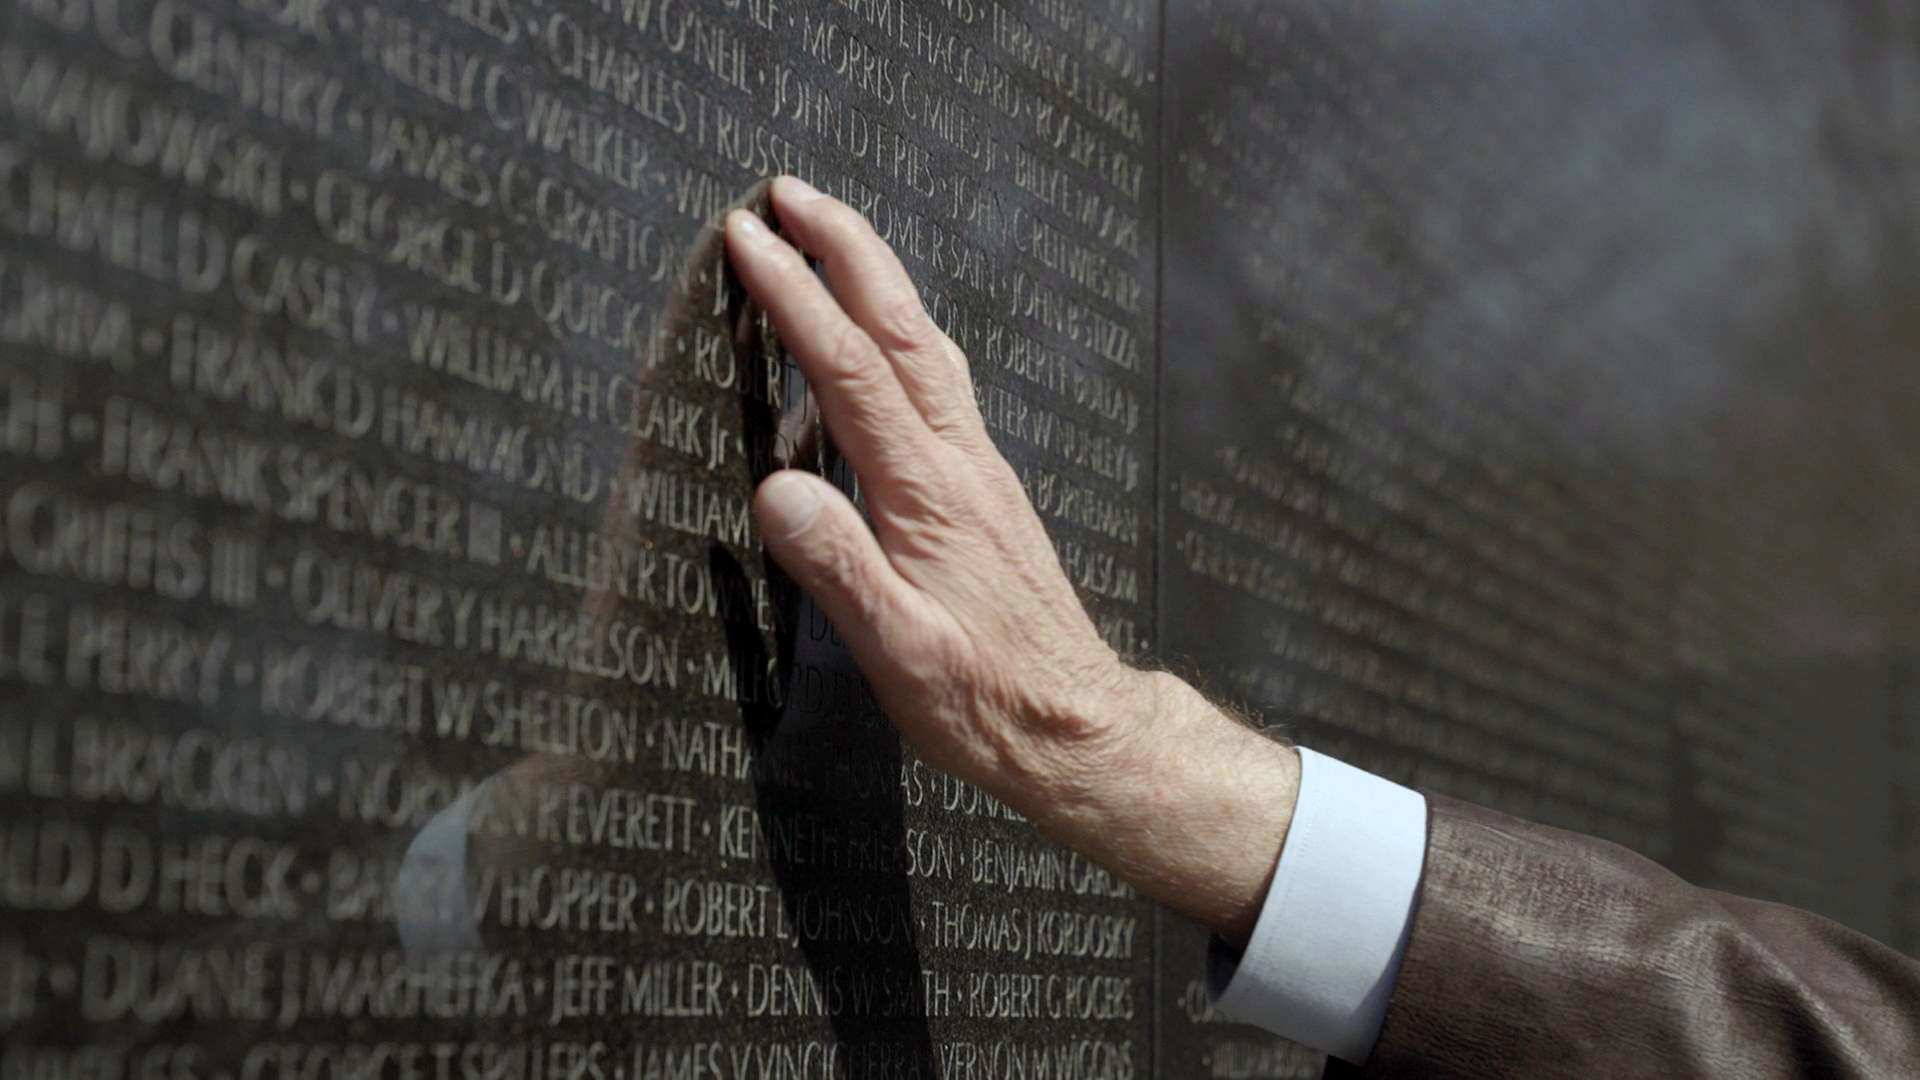 While the Vietnam Veterans Memorial and names provide an obvious visual reminder, Army Veteran Jan Scruggs wants people to know the story behind the memorial.